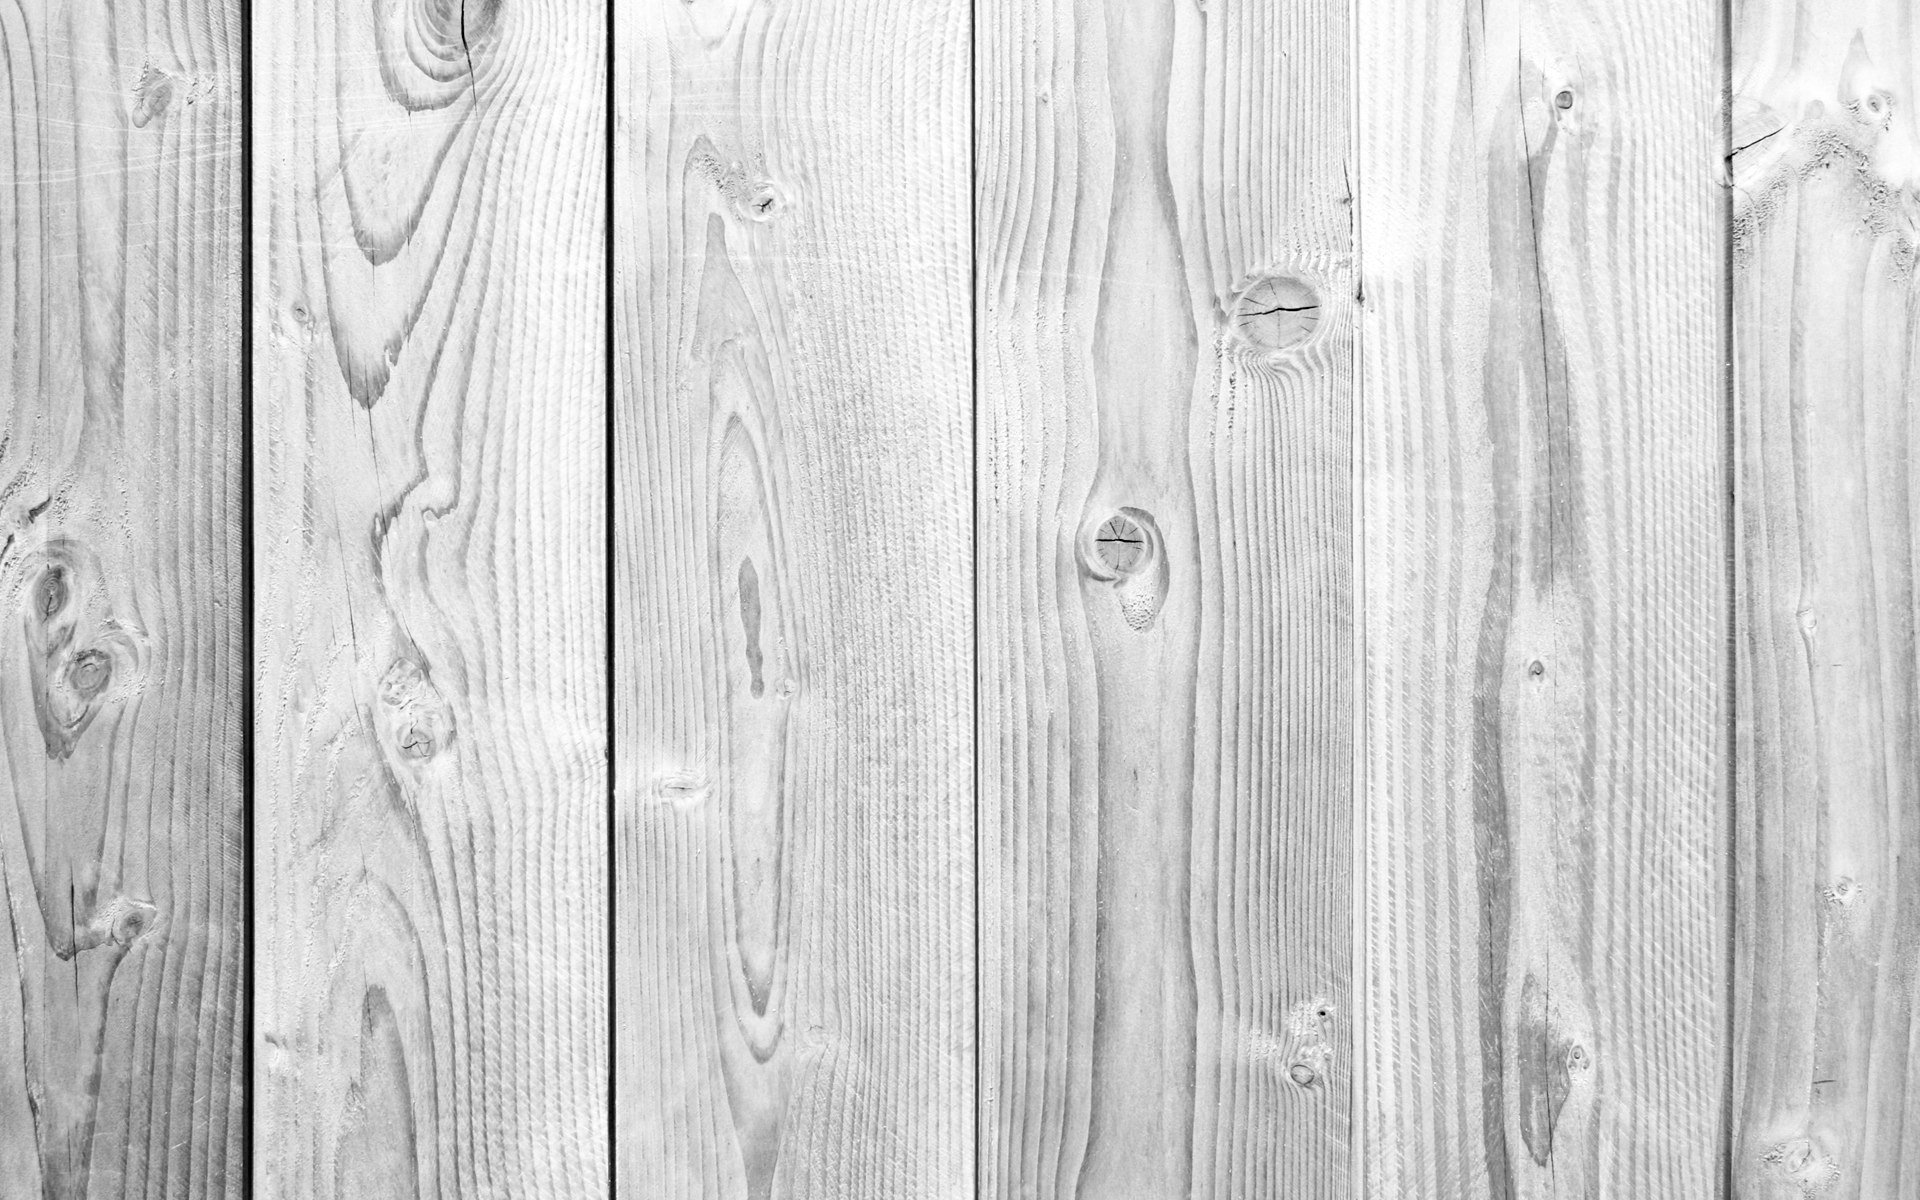 White wood wall texture wallpaper free images at clker for Wood wallpaper for walls